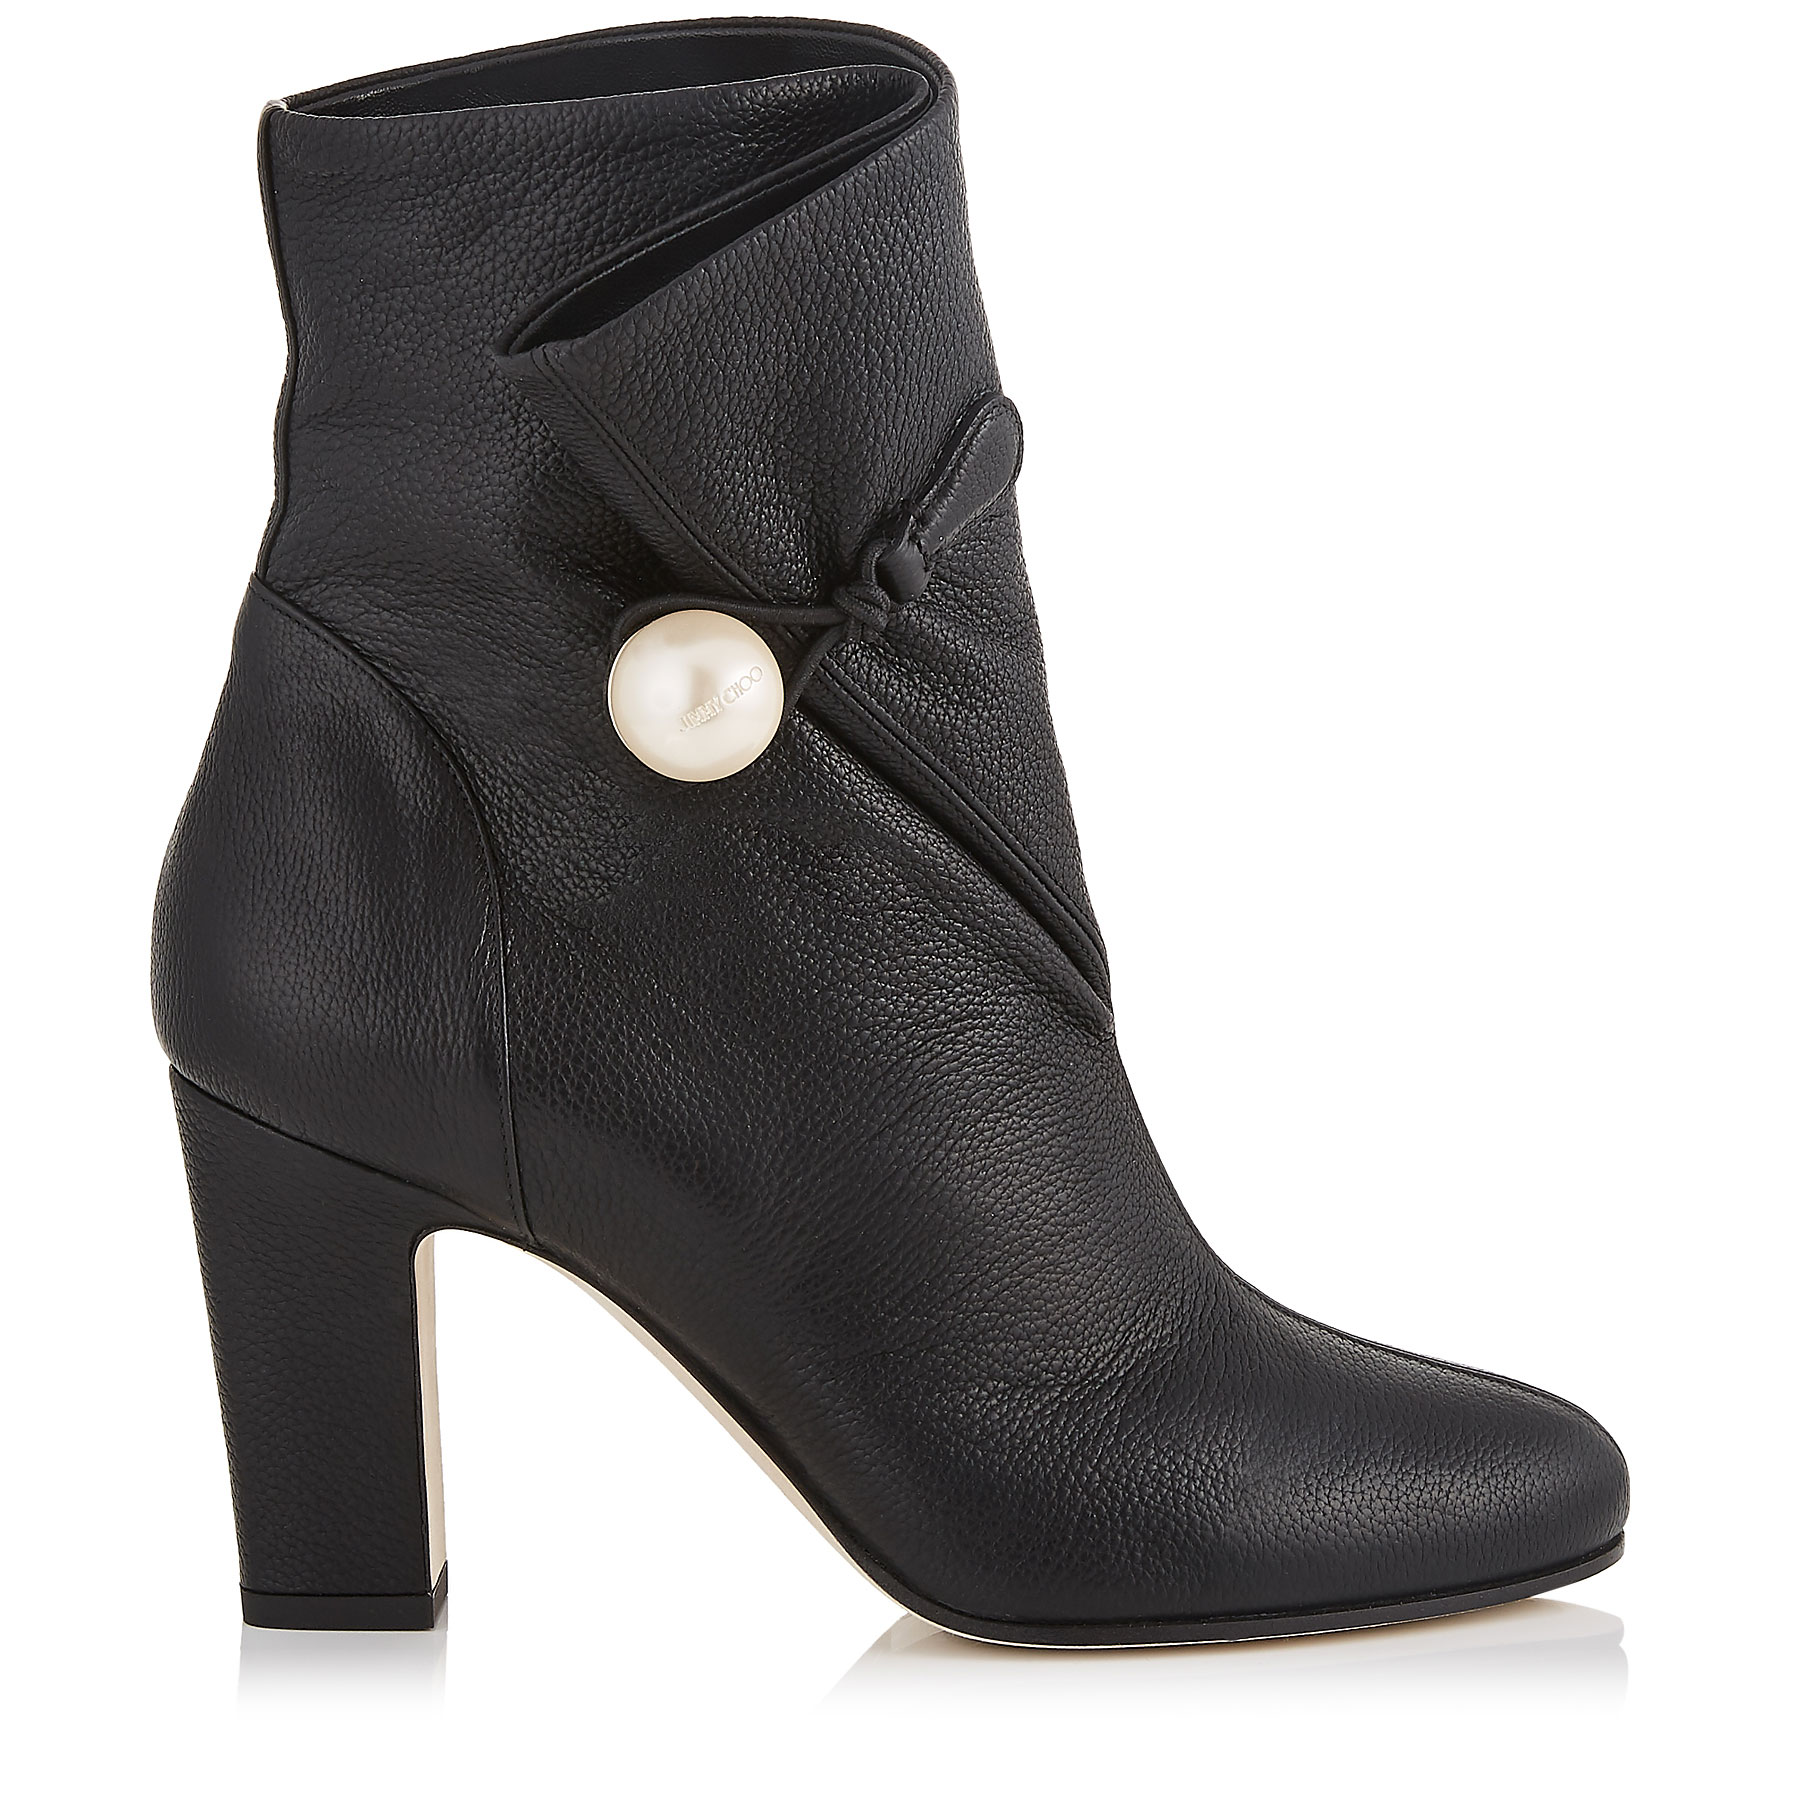 BETHANIE 85 Black Grainy Leather Booties with Pearl Detailing by Jimmy Choo